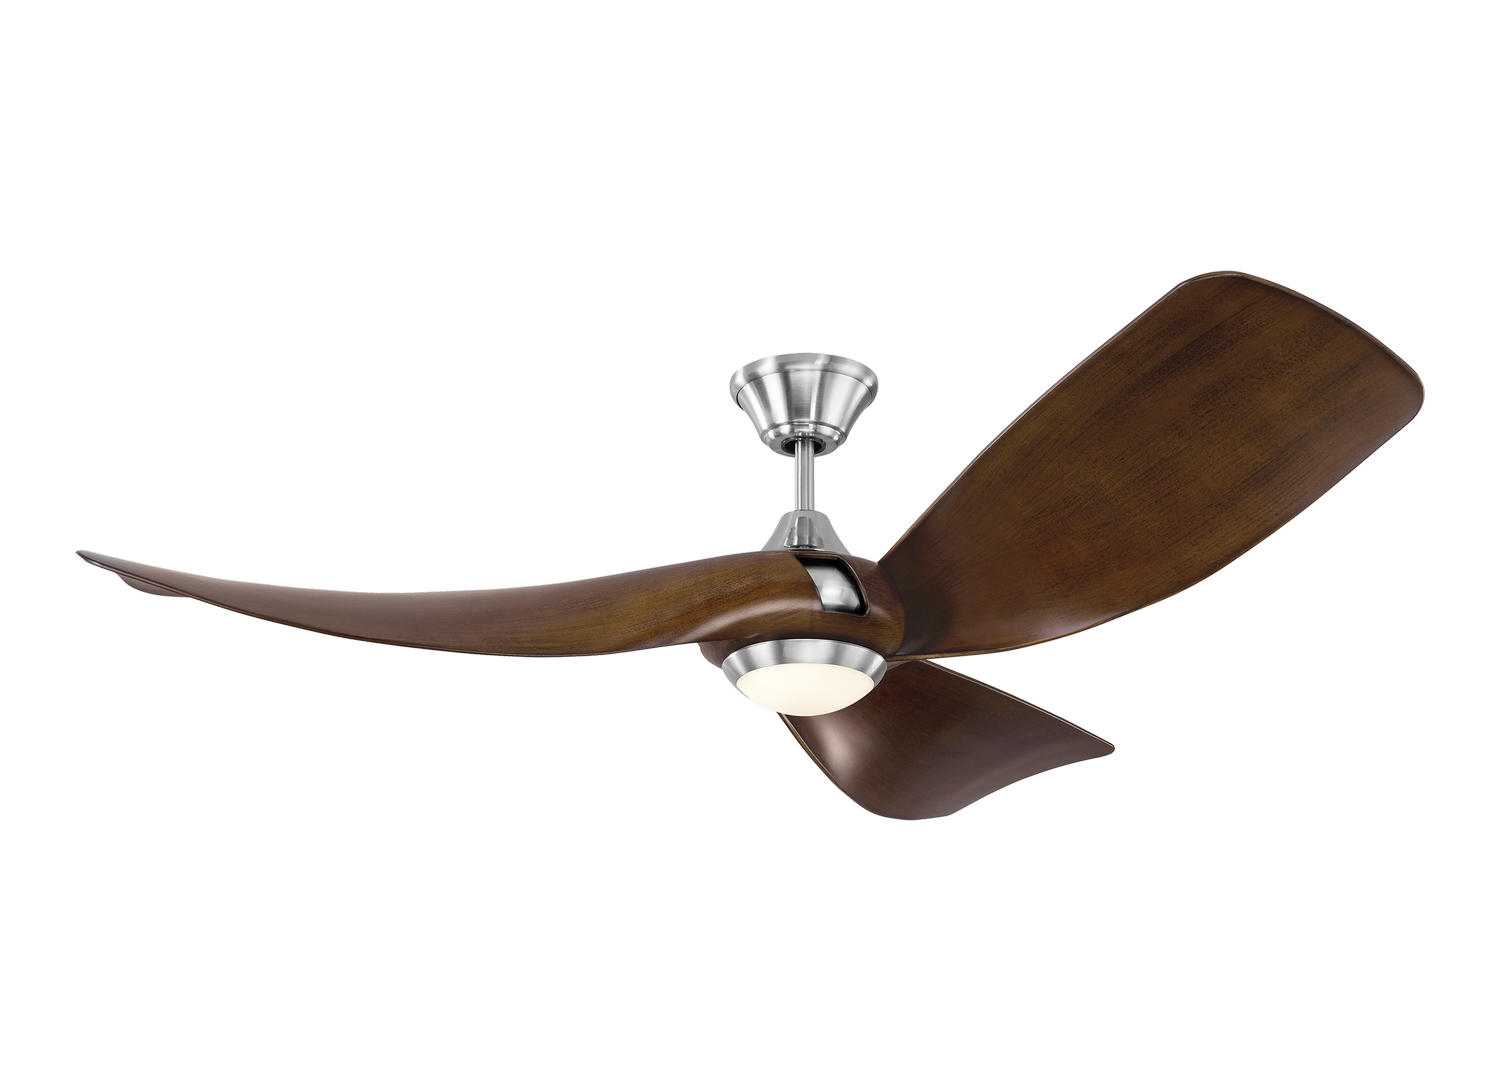 56 inchCeiling Fan from the Melody collection by Monte Carlo 3MER56BSD